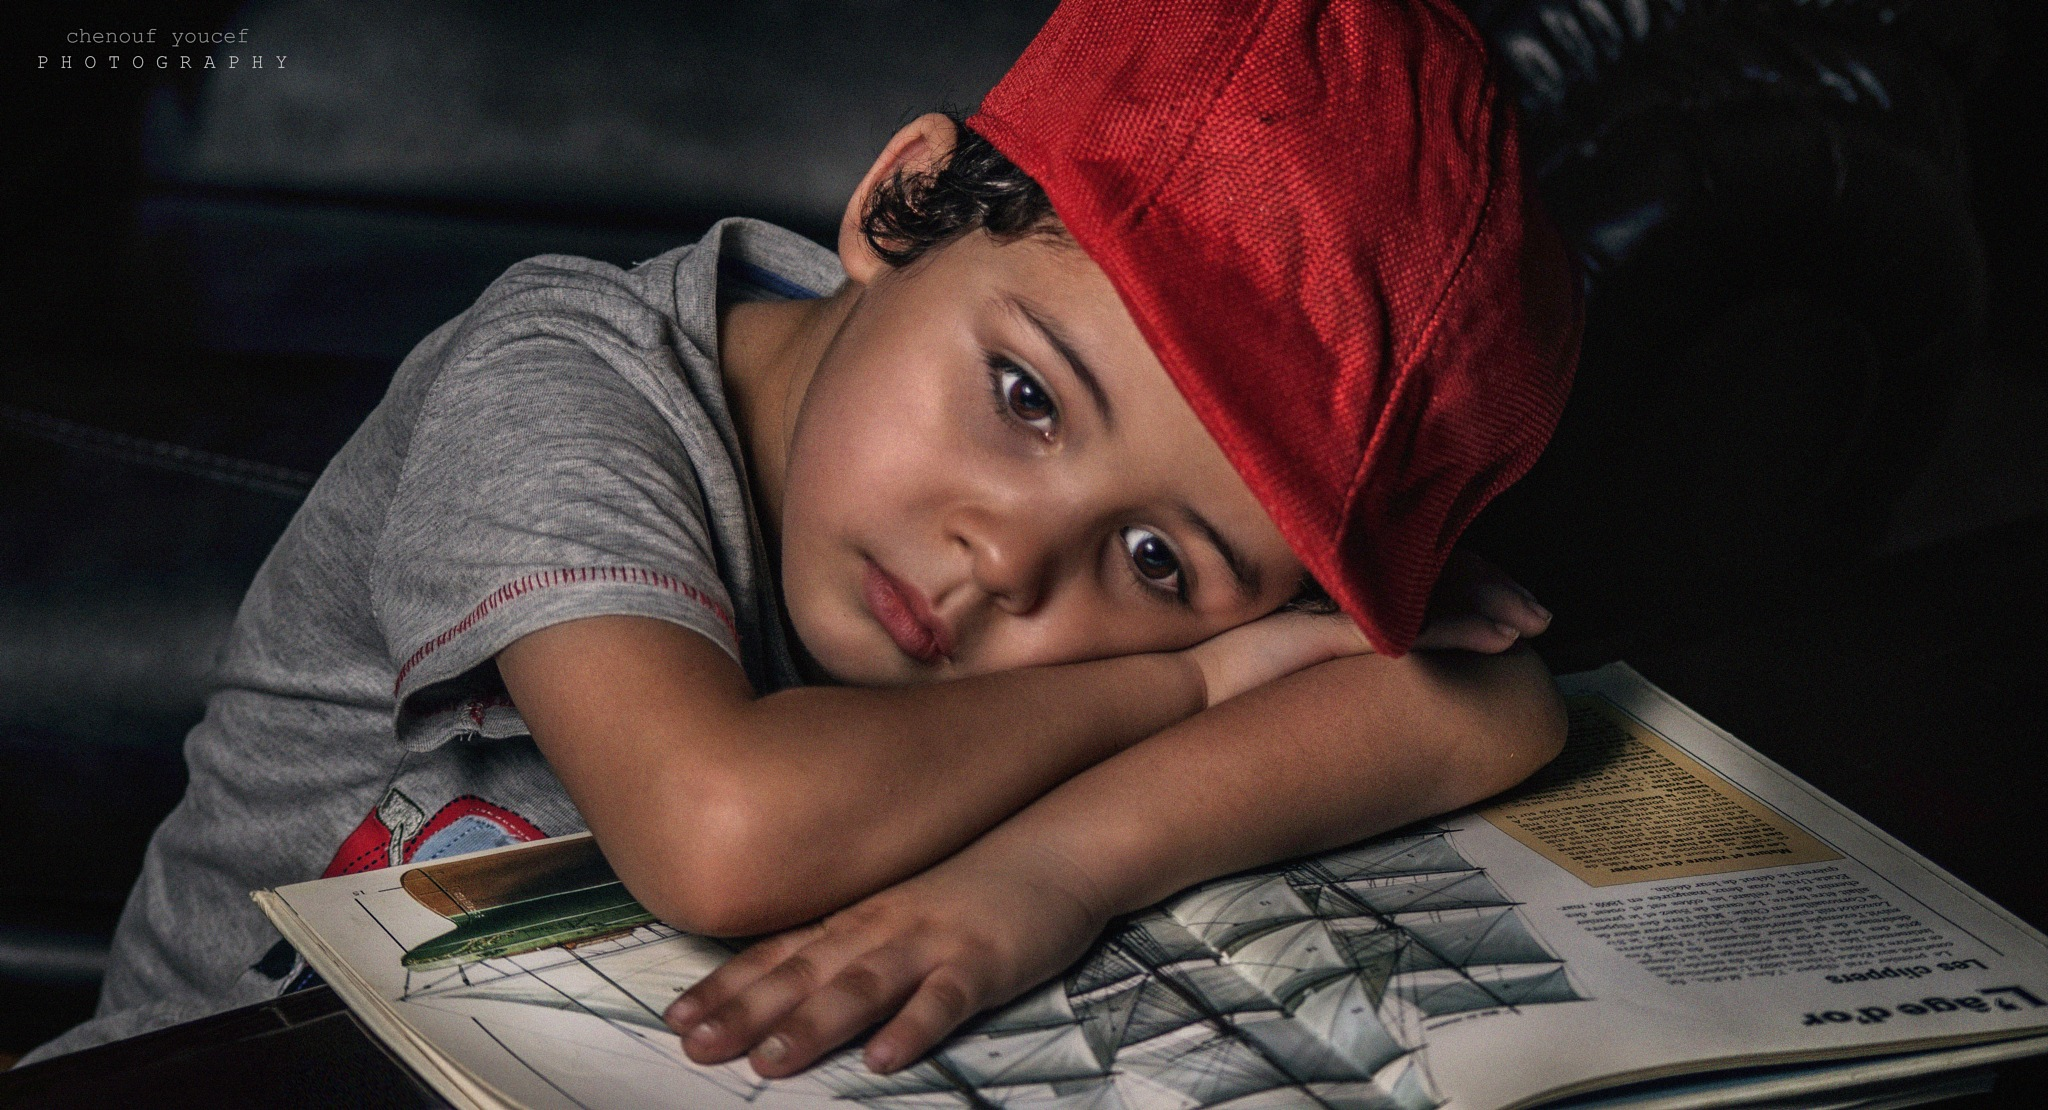 Dreams of children by Che Youcef